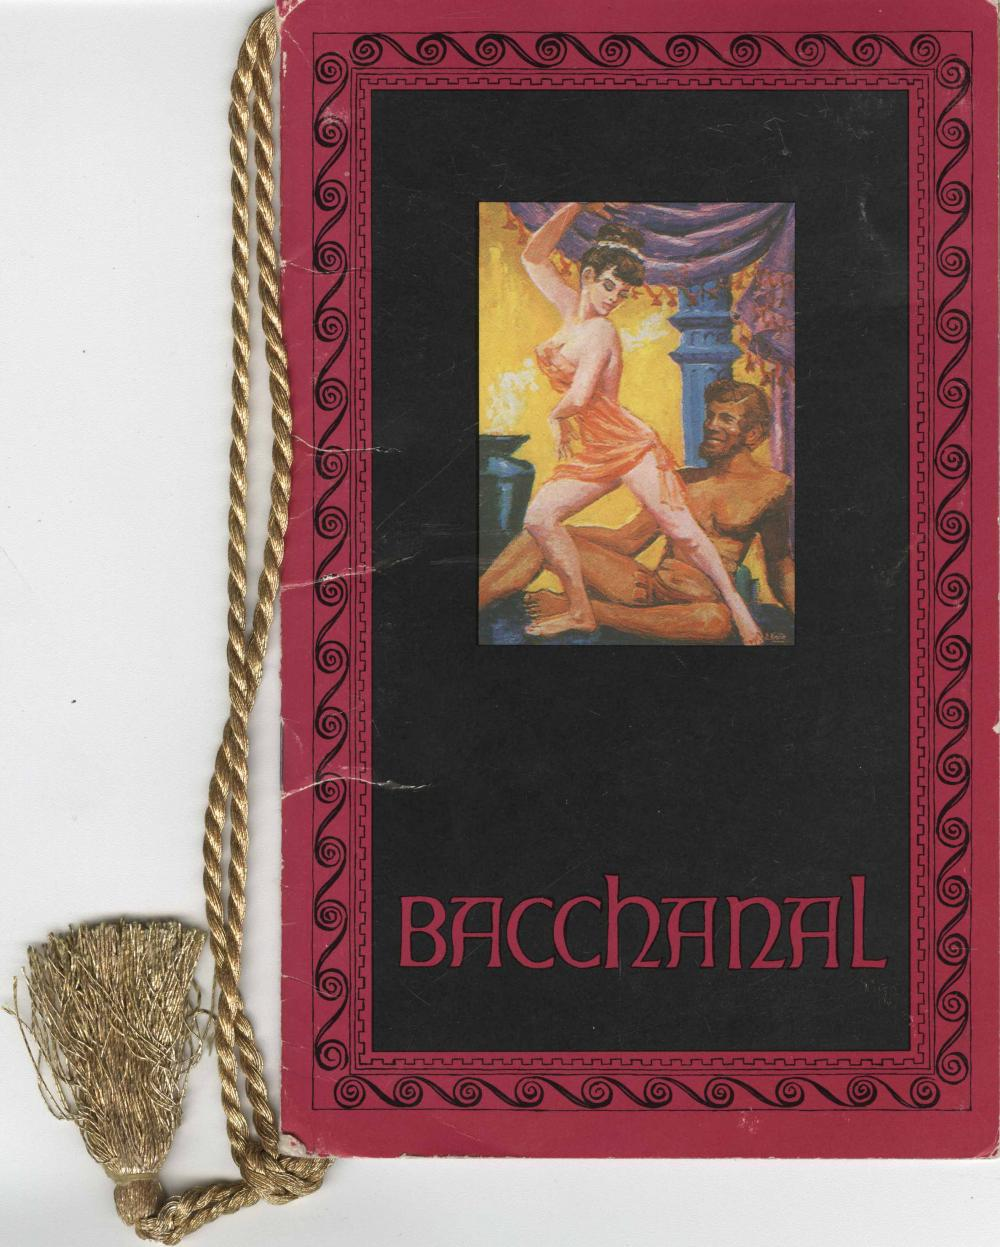 Menu for an event at Bacchanal in Caesars Palace, Las Vegas c. late 1960s